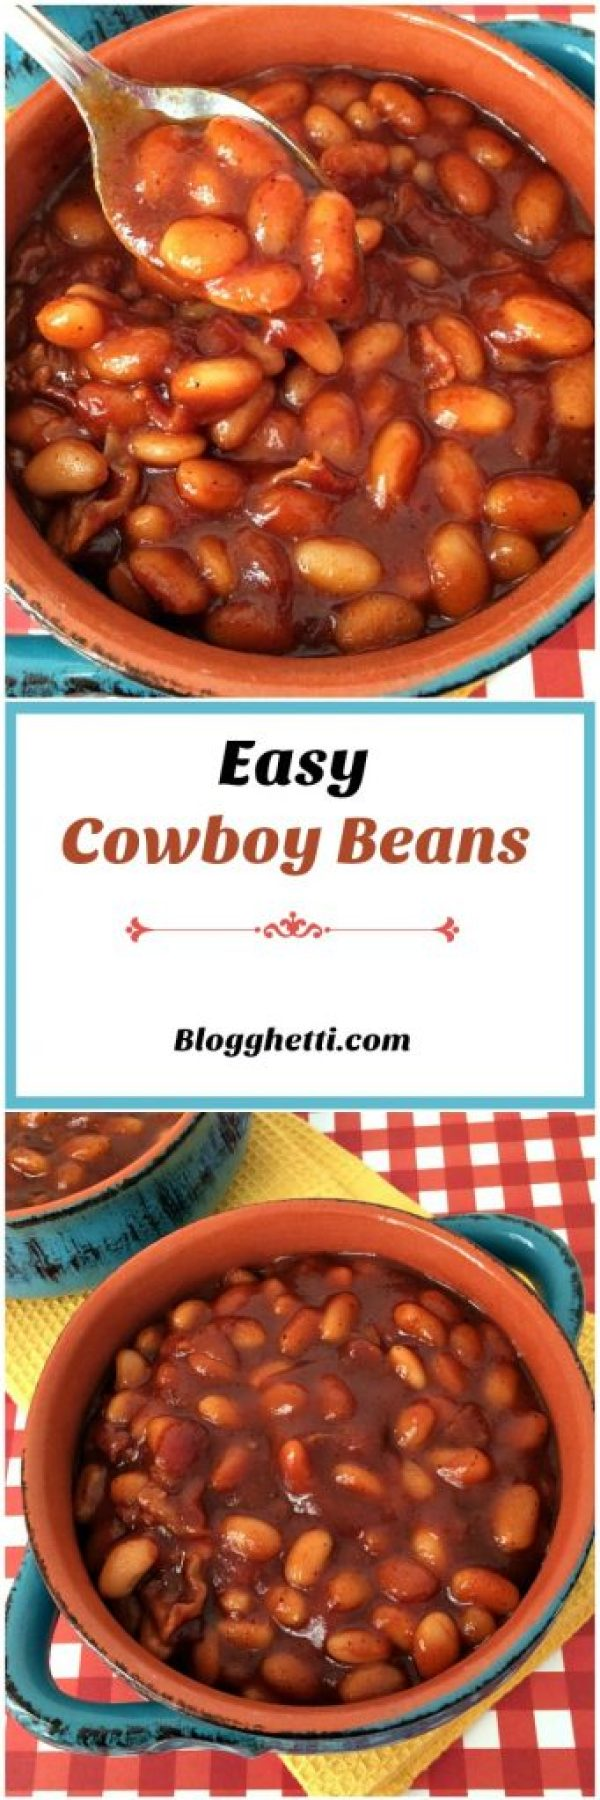 These Cowboy Beans have a sweet and tangy taste to them thanks to the honey and the chili pepper. They looked divine and the clincher, for me, was that from start to finish it took less than 30 minutes to make.